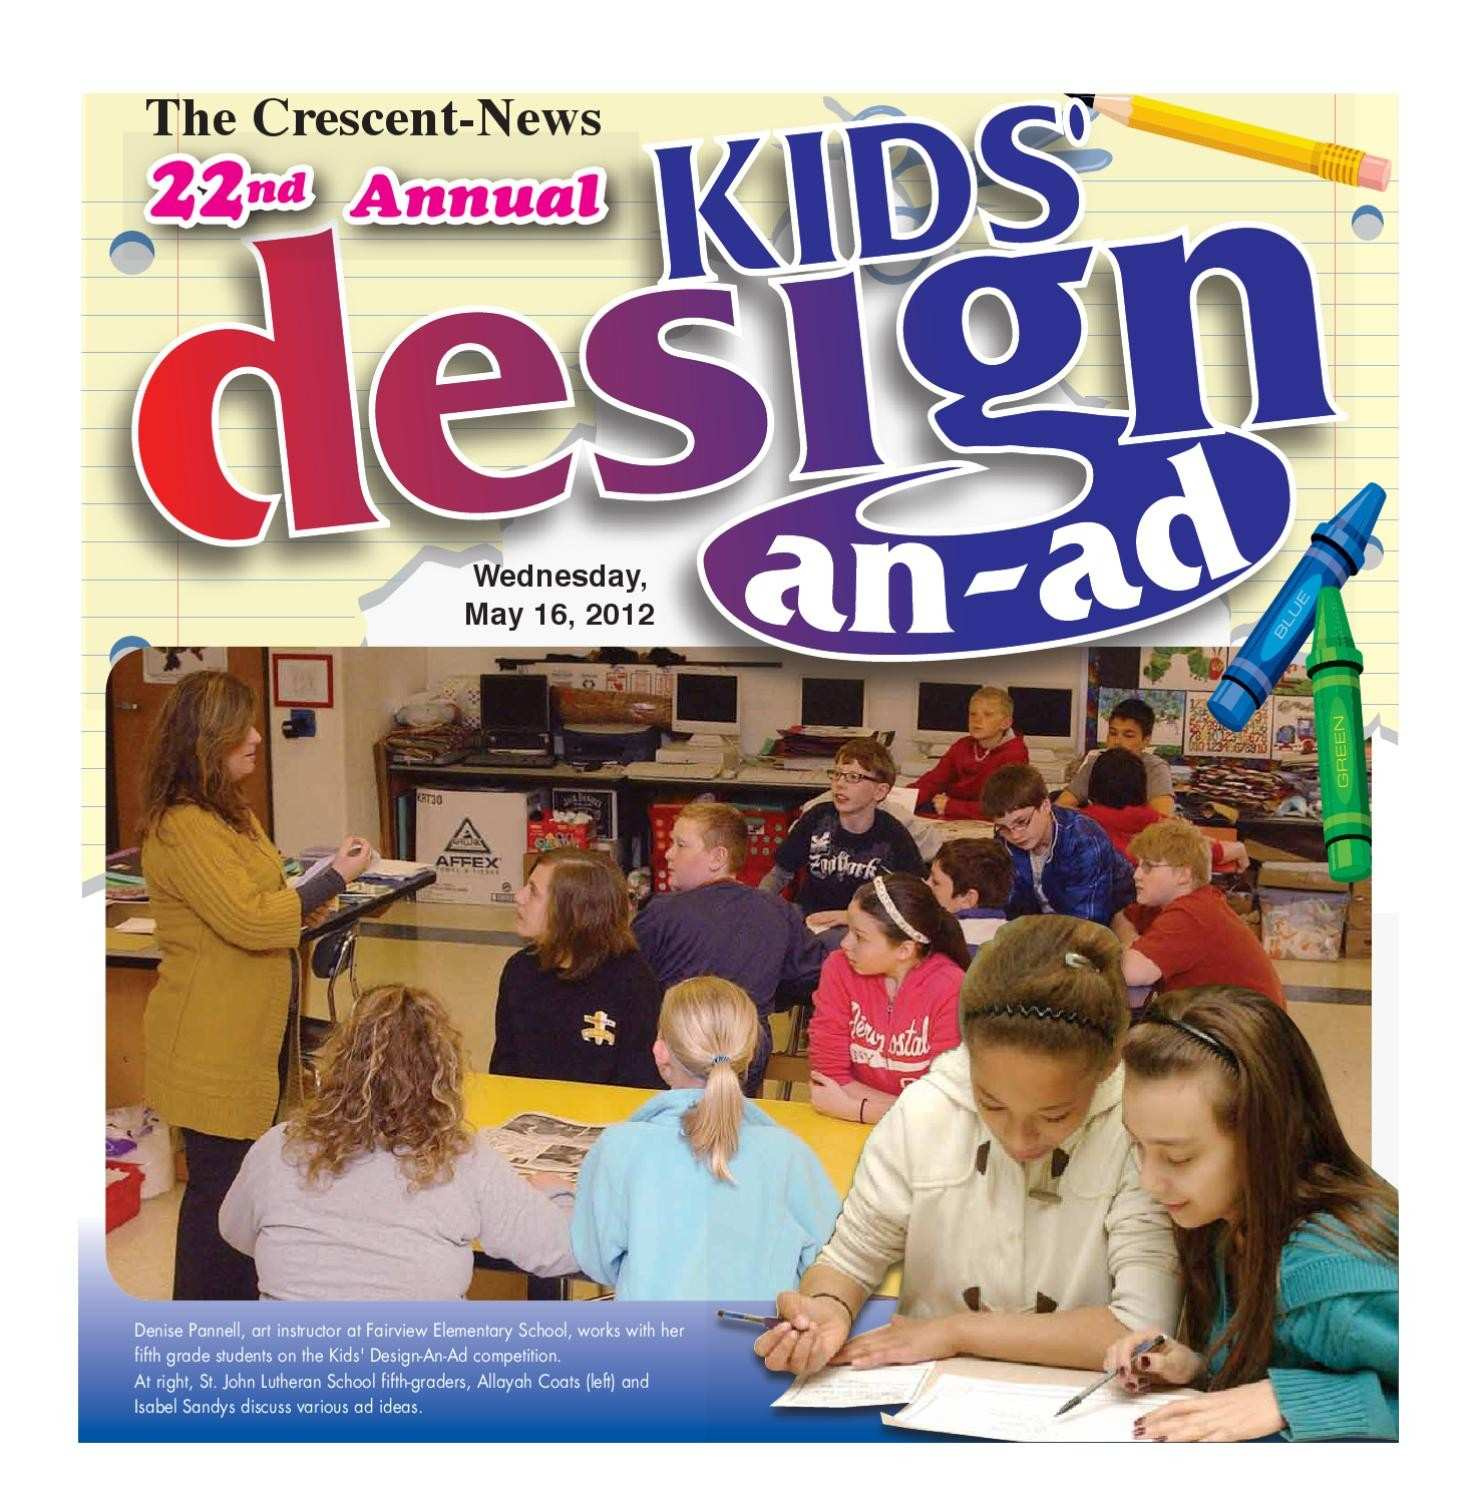 Kids Design An Ad by GateHouse Media NEO issuu